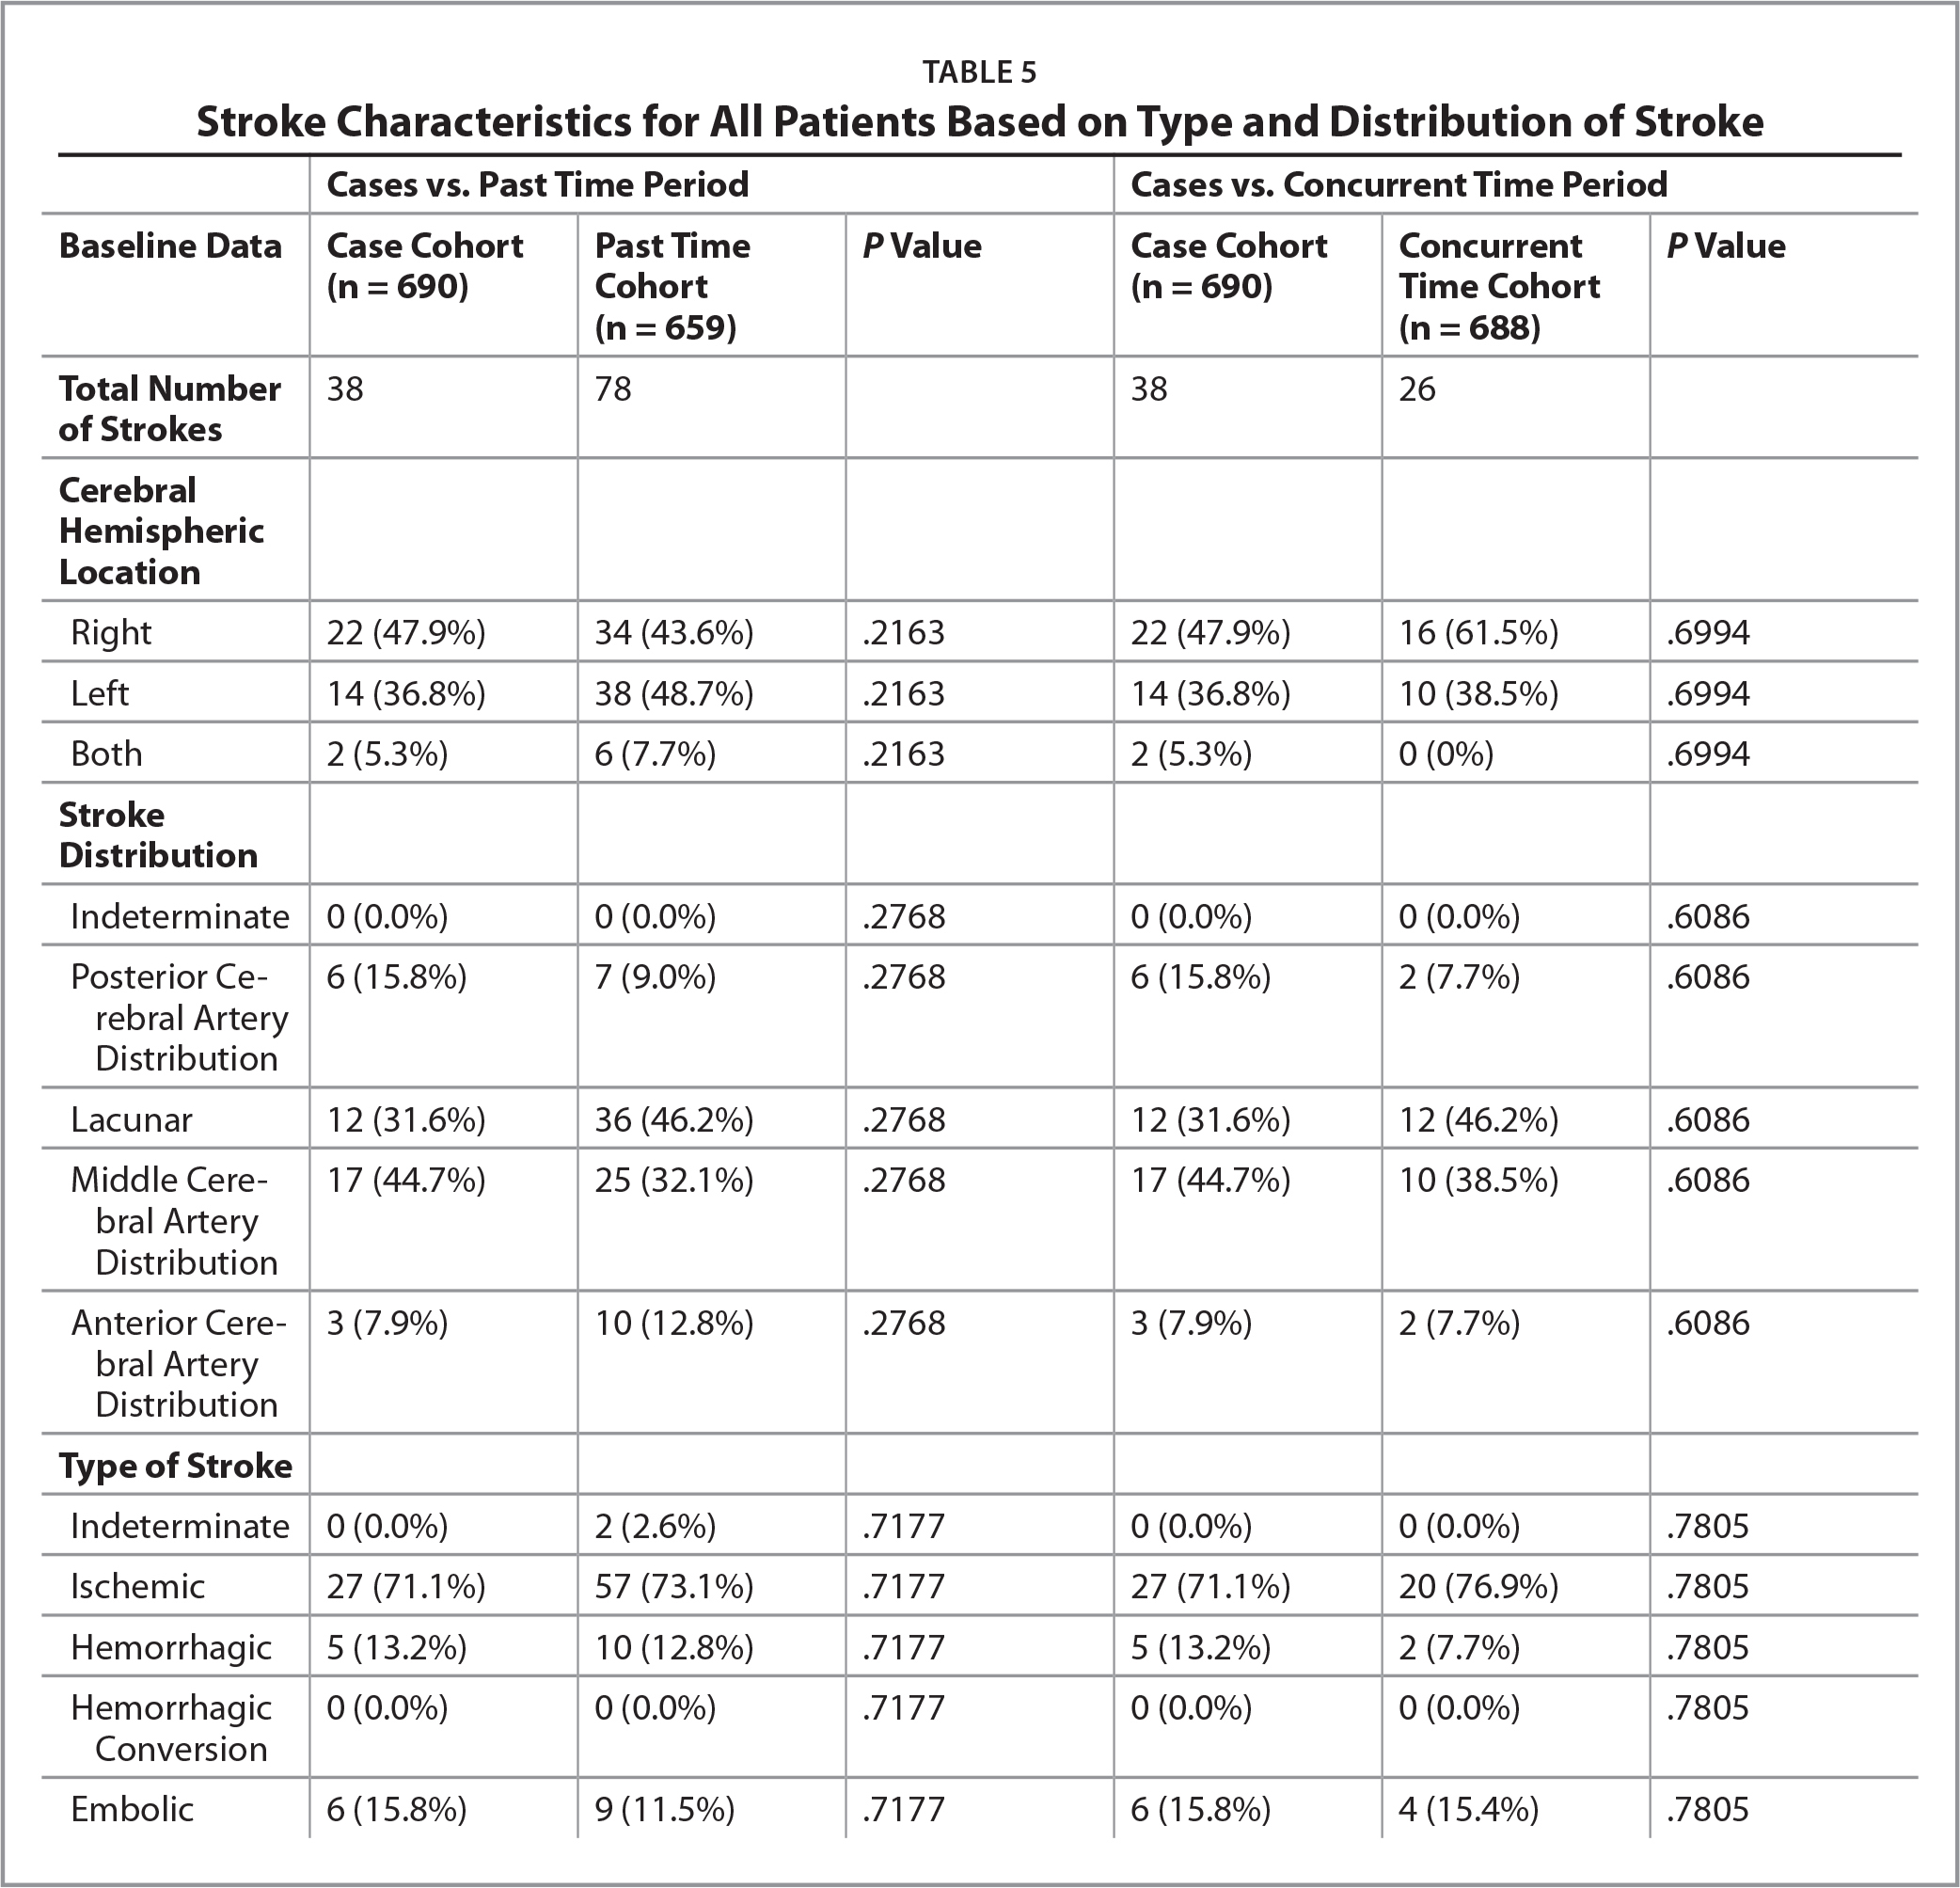 Stroke Characteristics for All Patients Based on Type and Distribution of Stroke